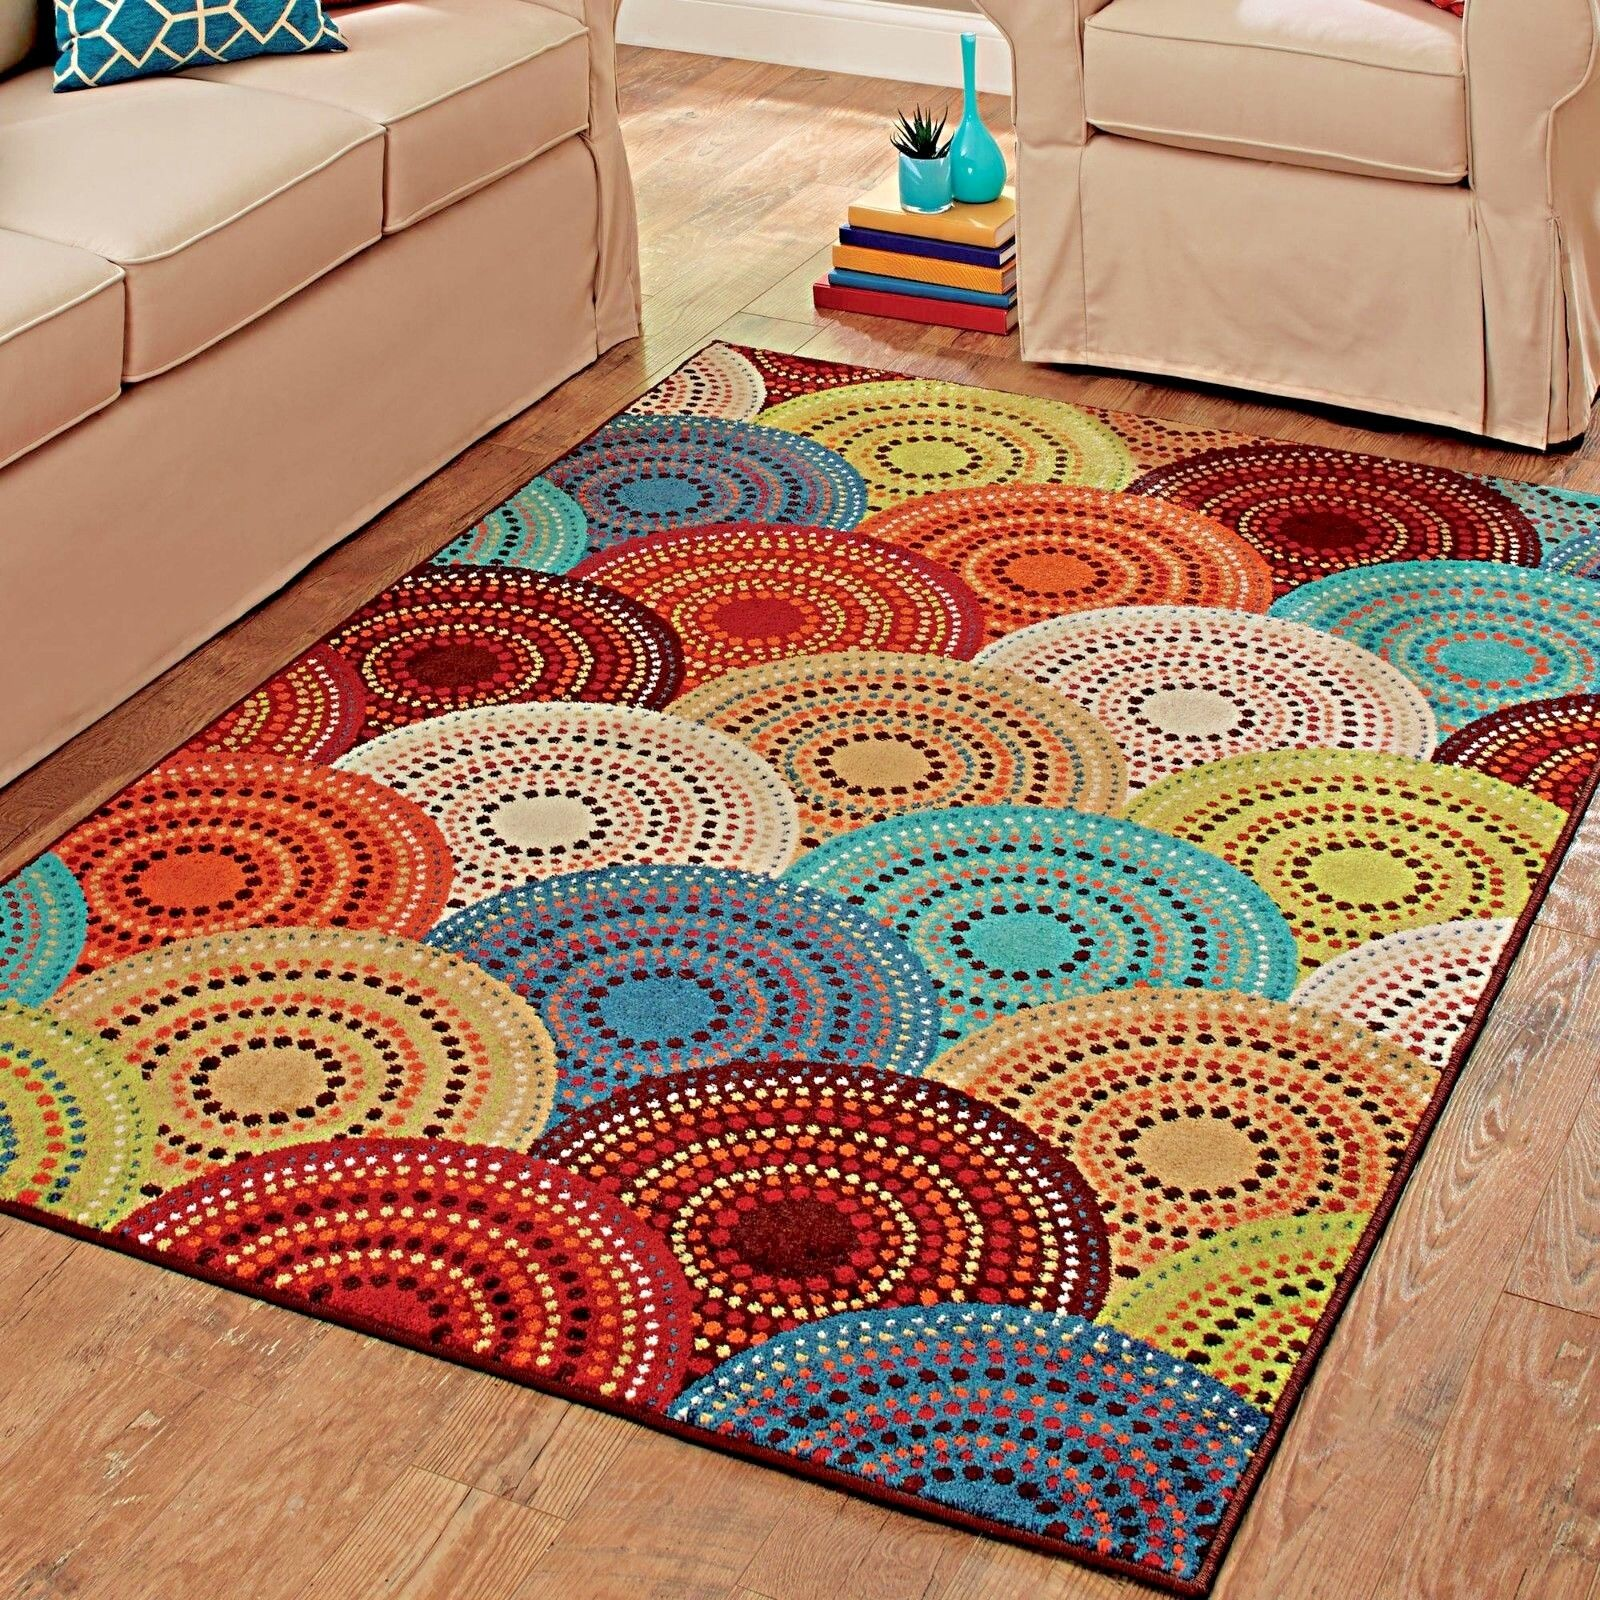 colorful area rugs rugs area rugs carpet 8x10 area rug floor modern colorful 12630